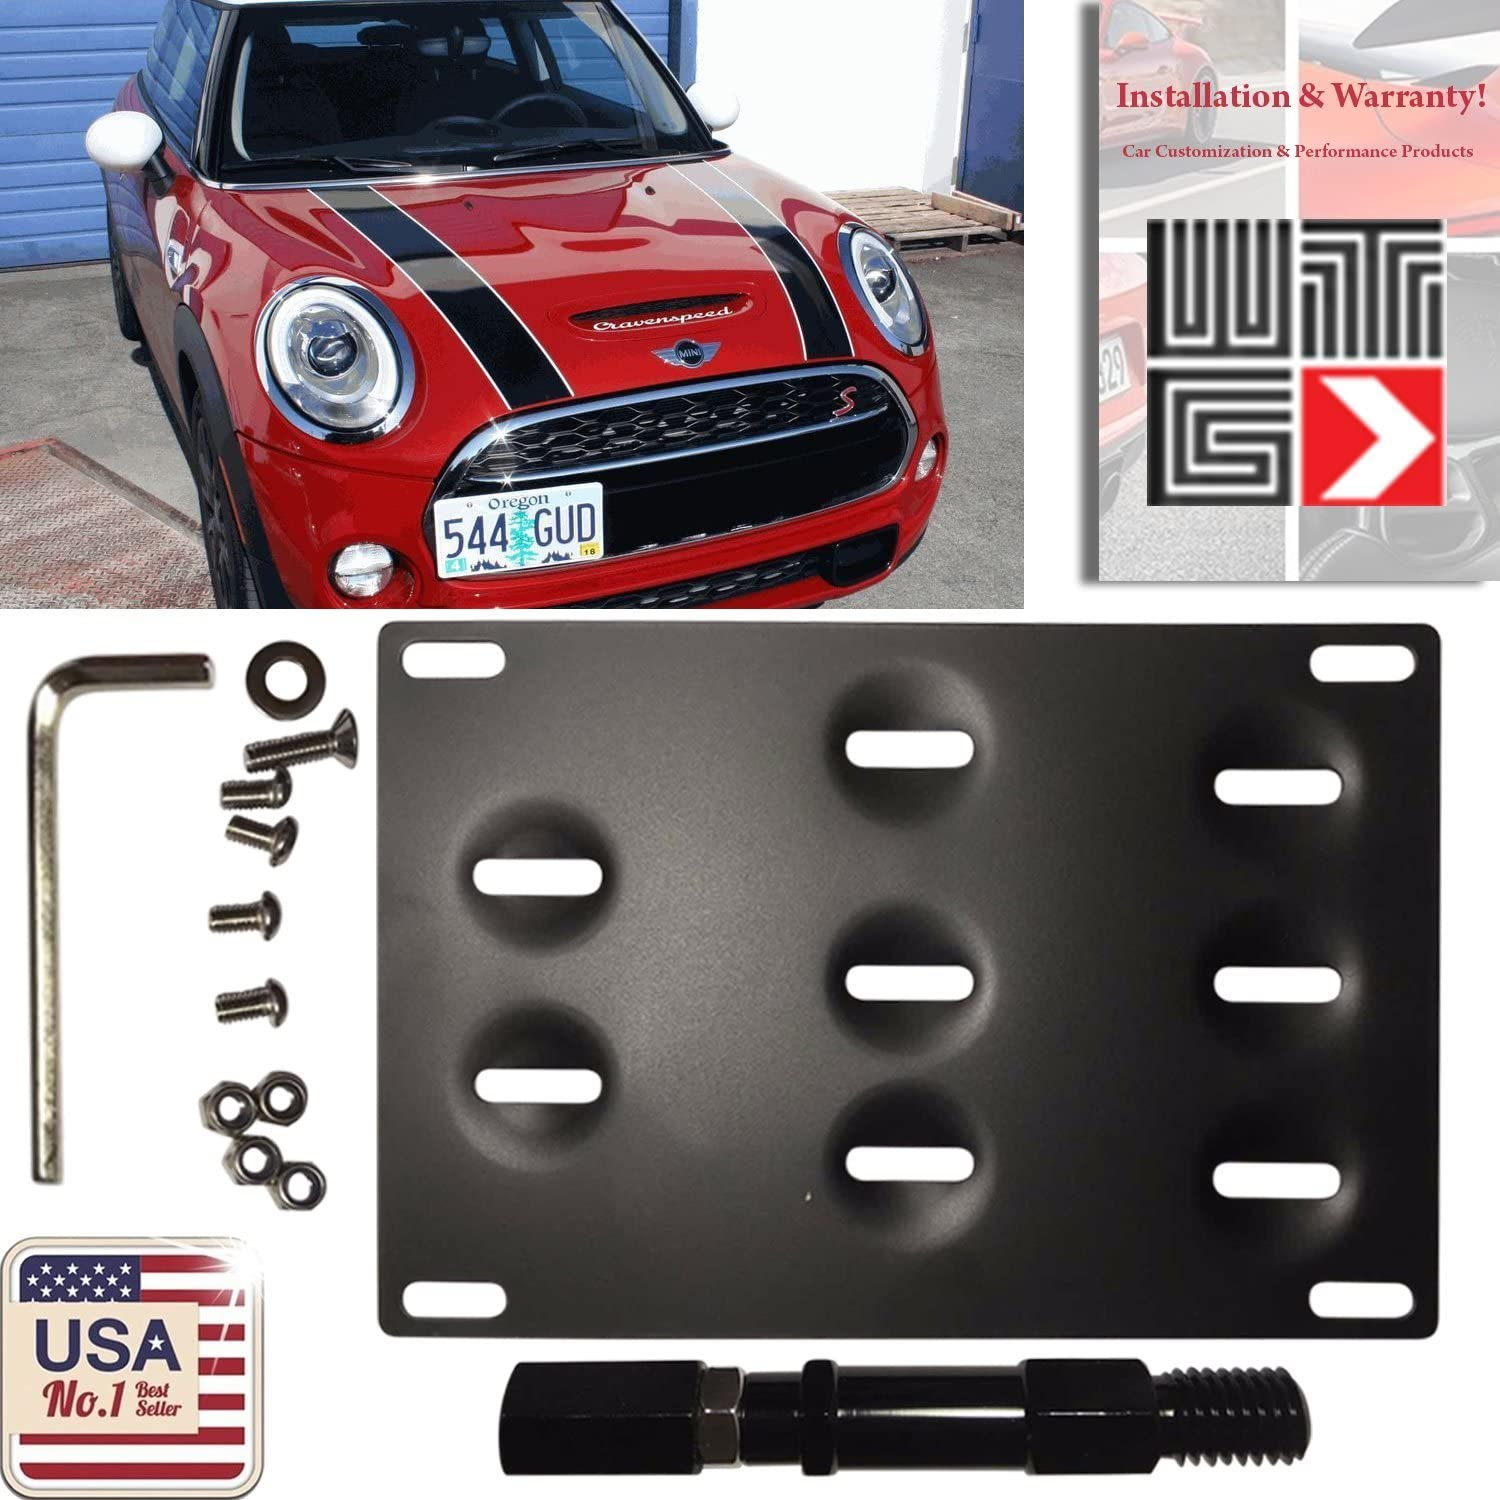 WTG Front Bumper Tow Hook Hole Adapter License Plate Mounting Bracket for Mini Cooper R60 Countryman R61 Paceman F55 F56